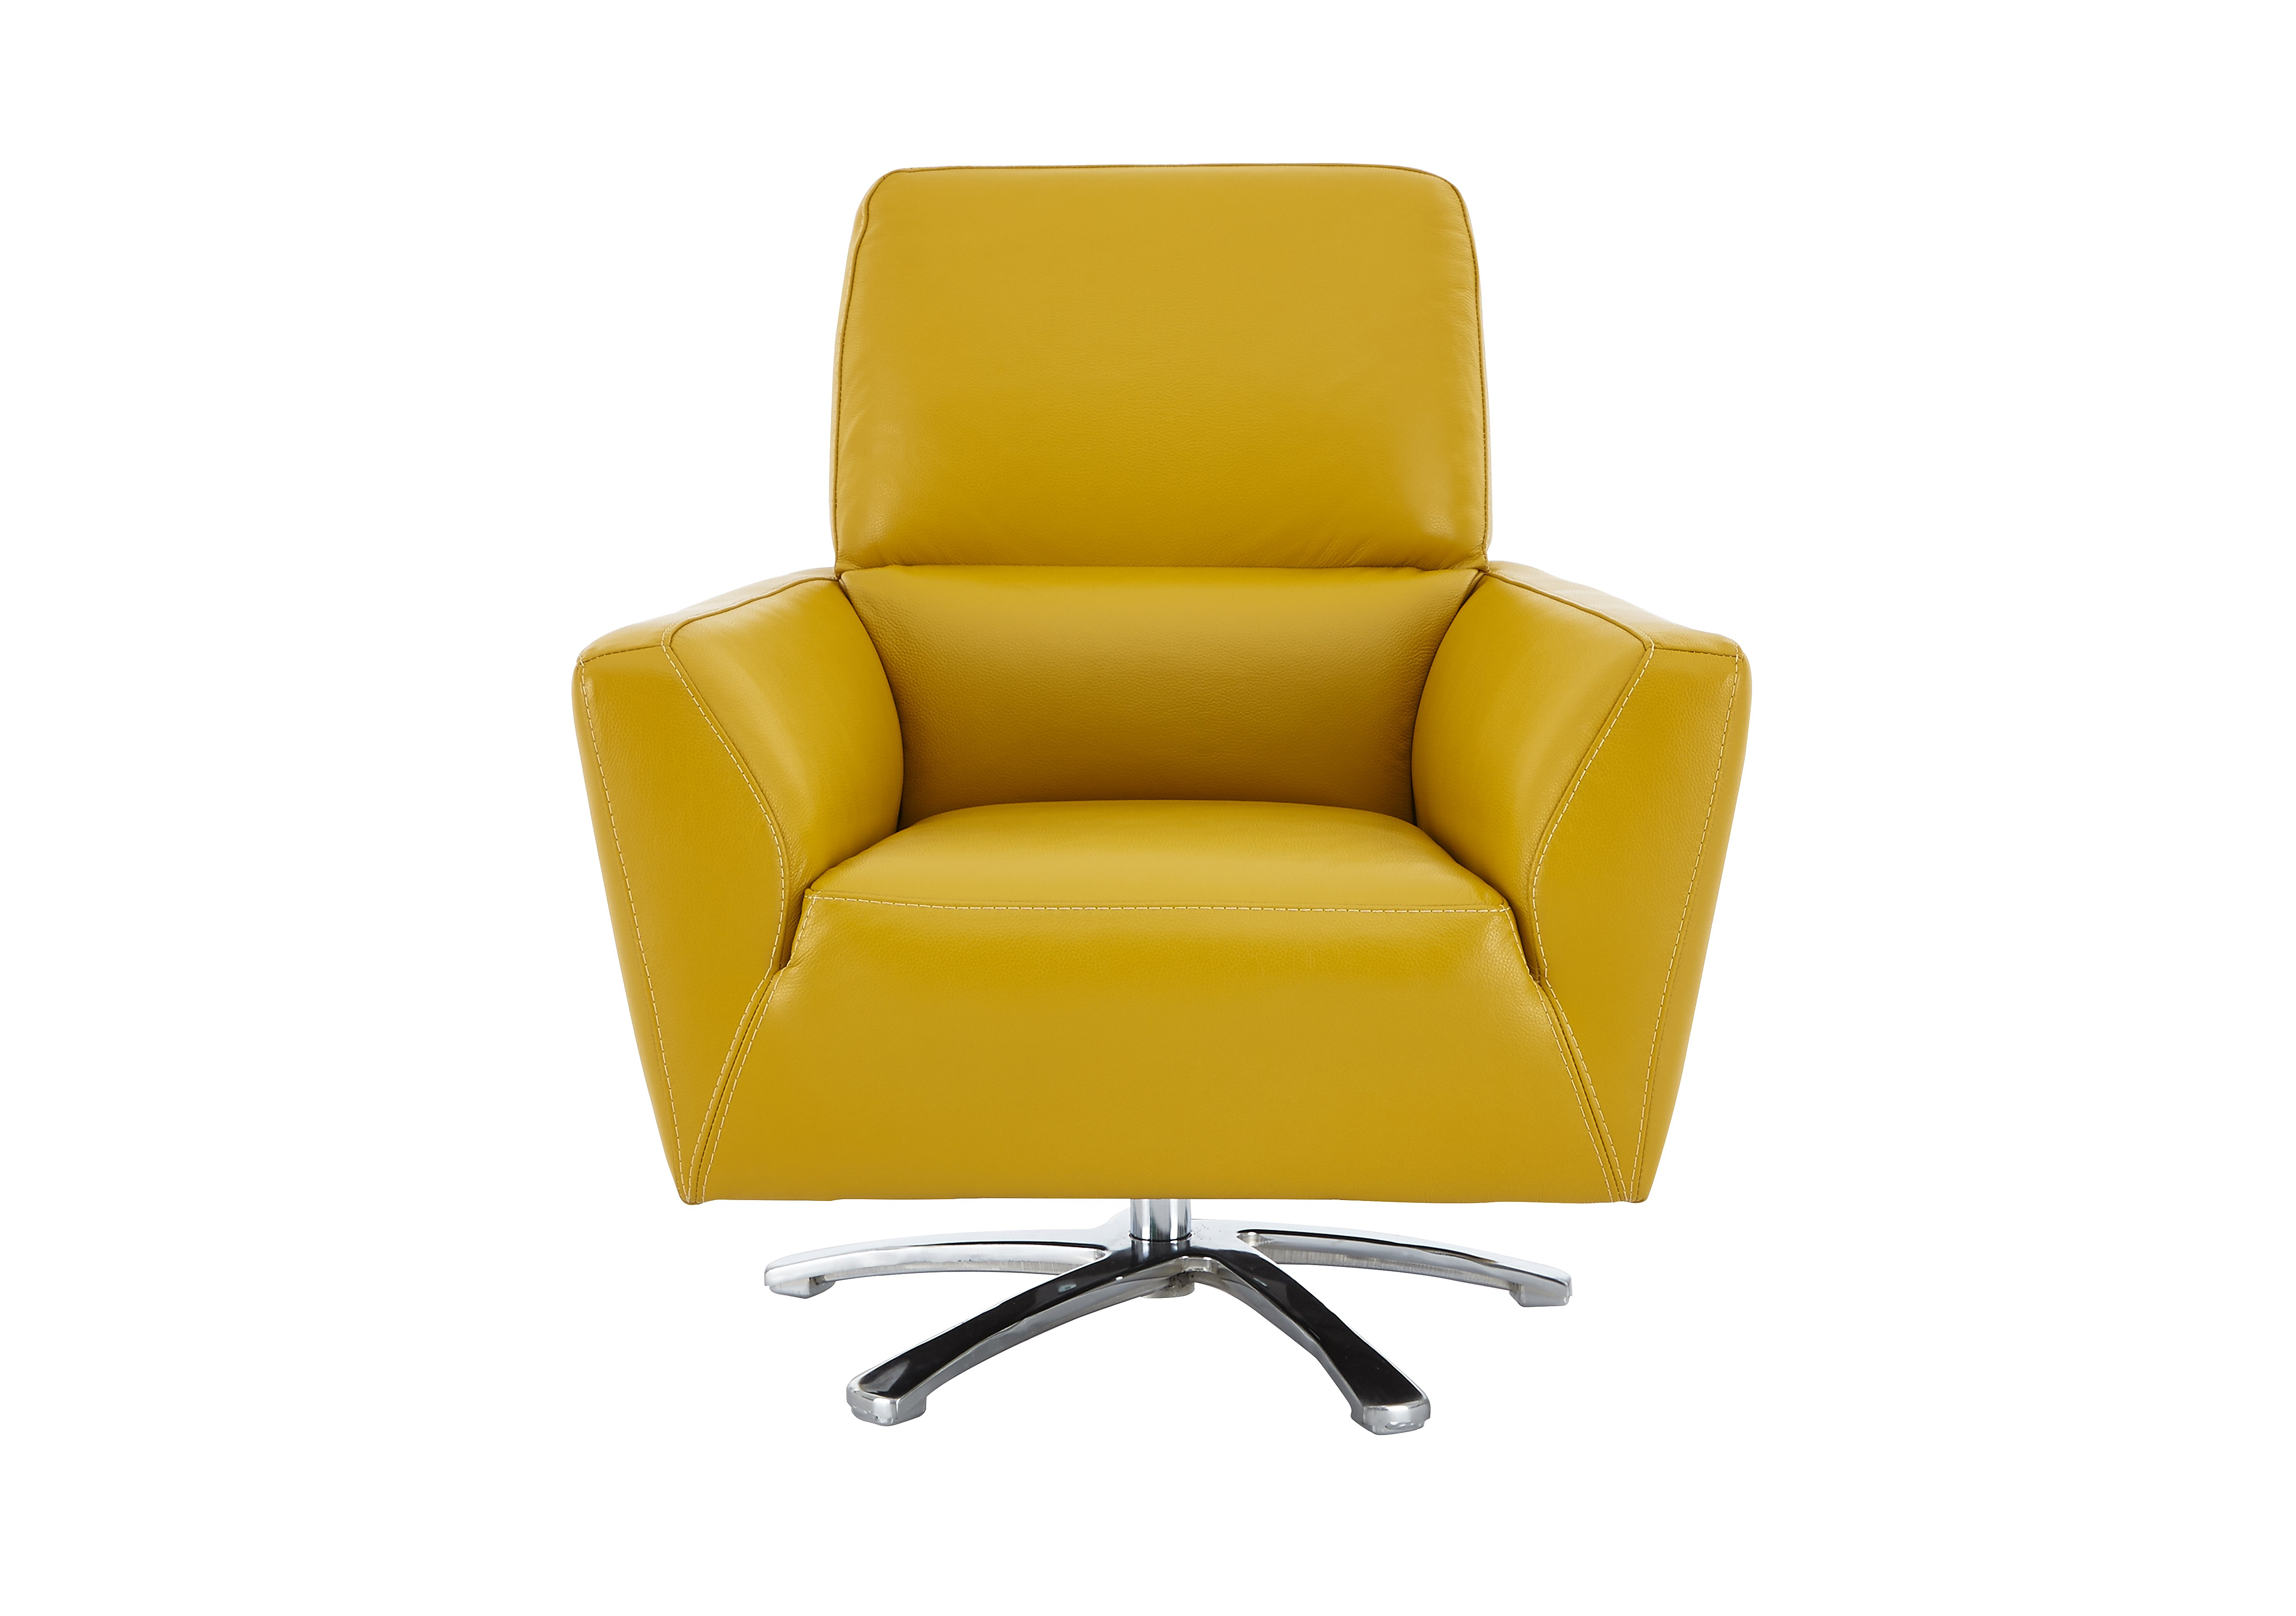 Mustang Leather Swivel Chair Furniture Village